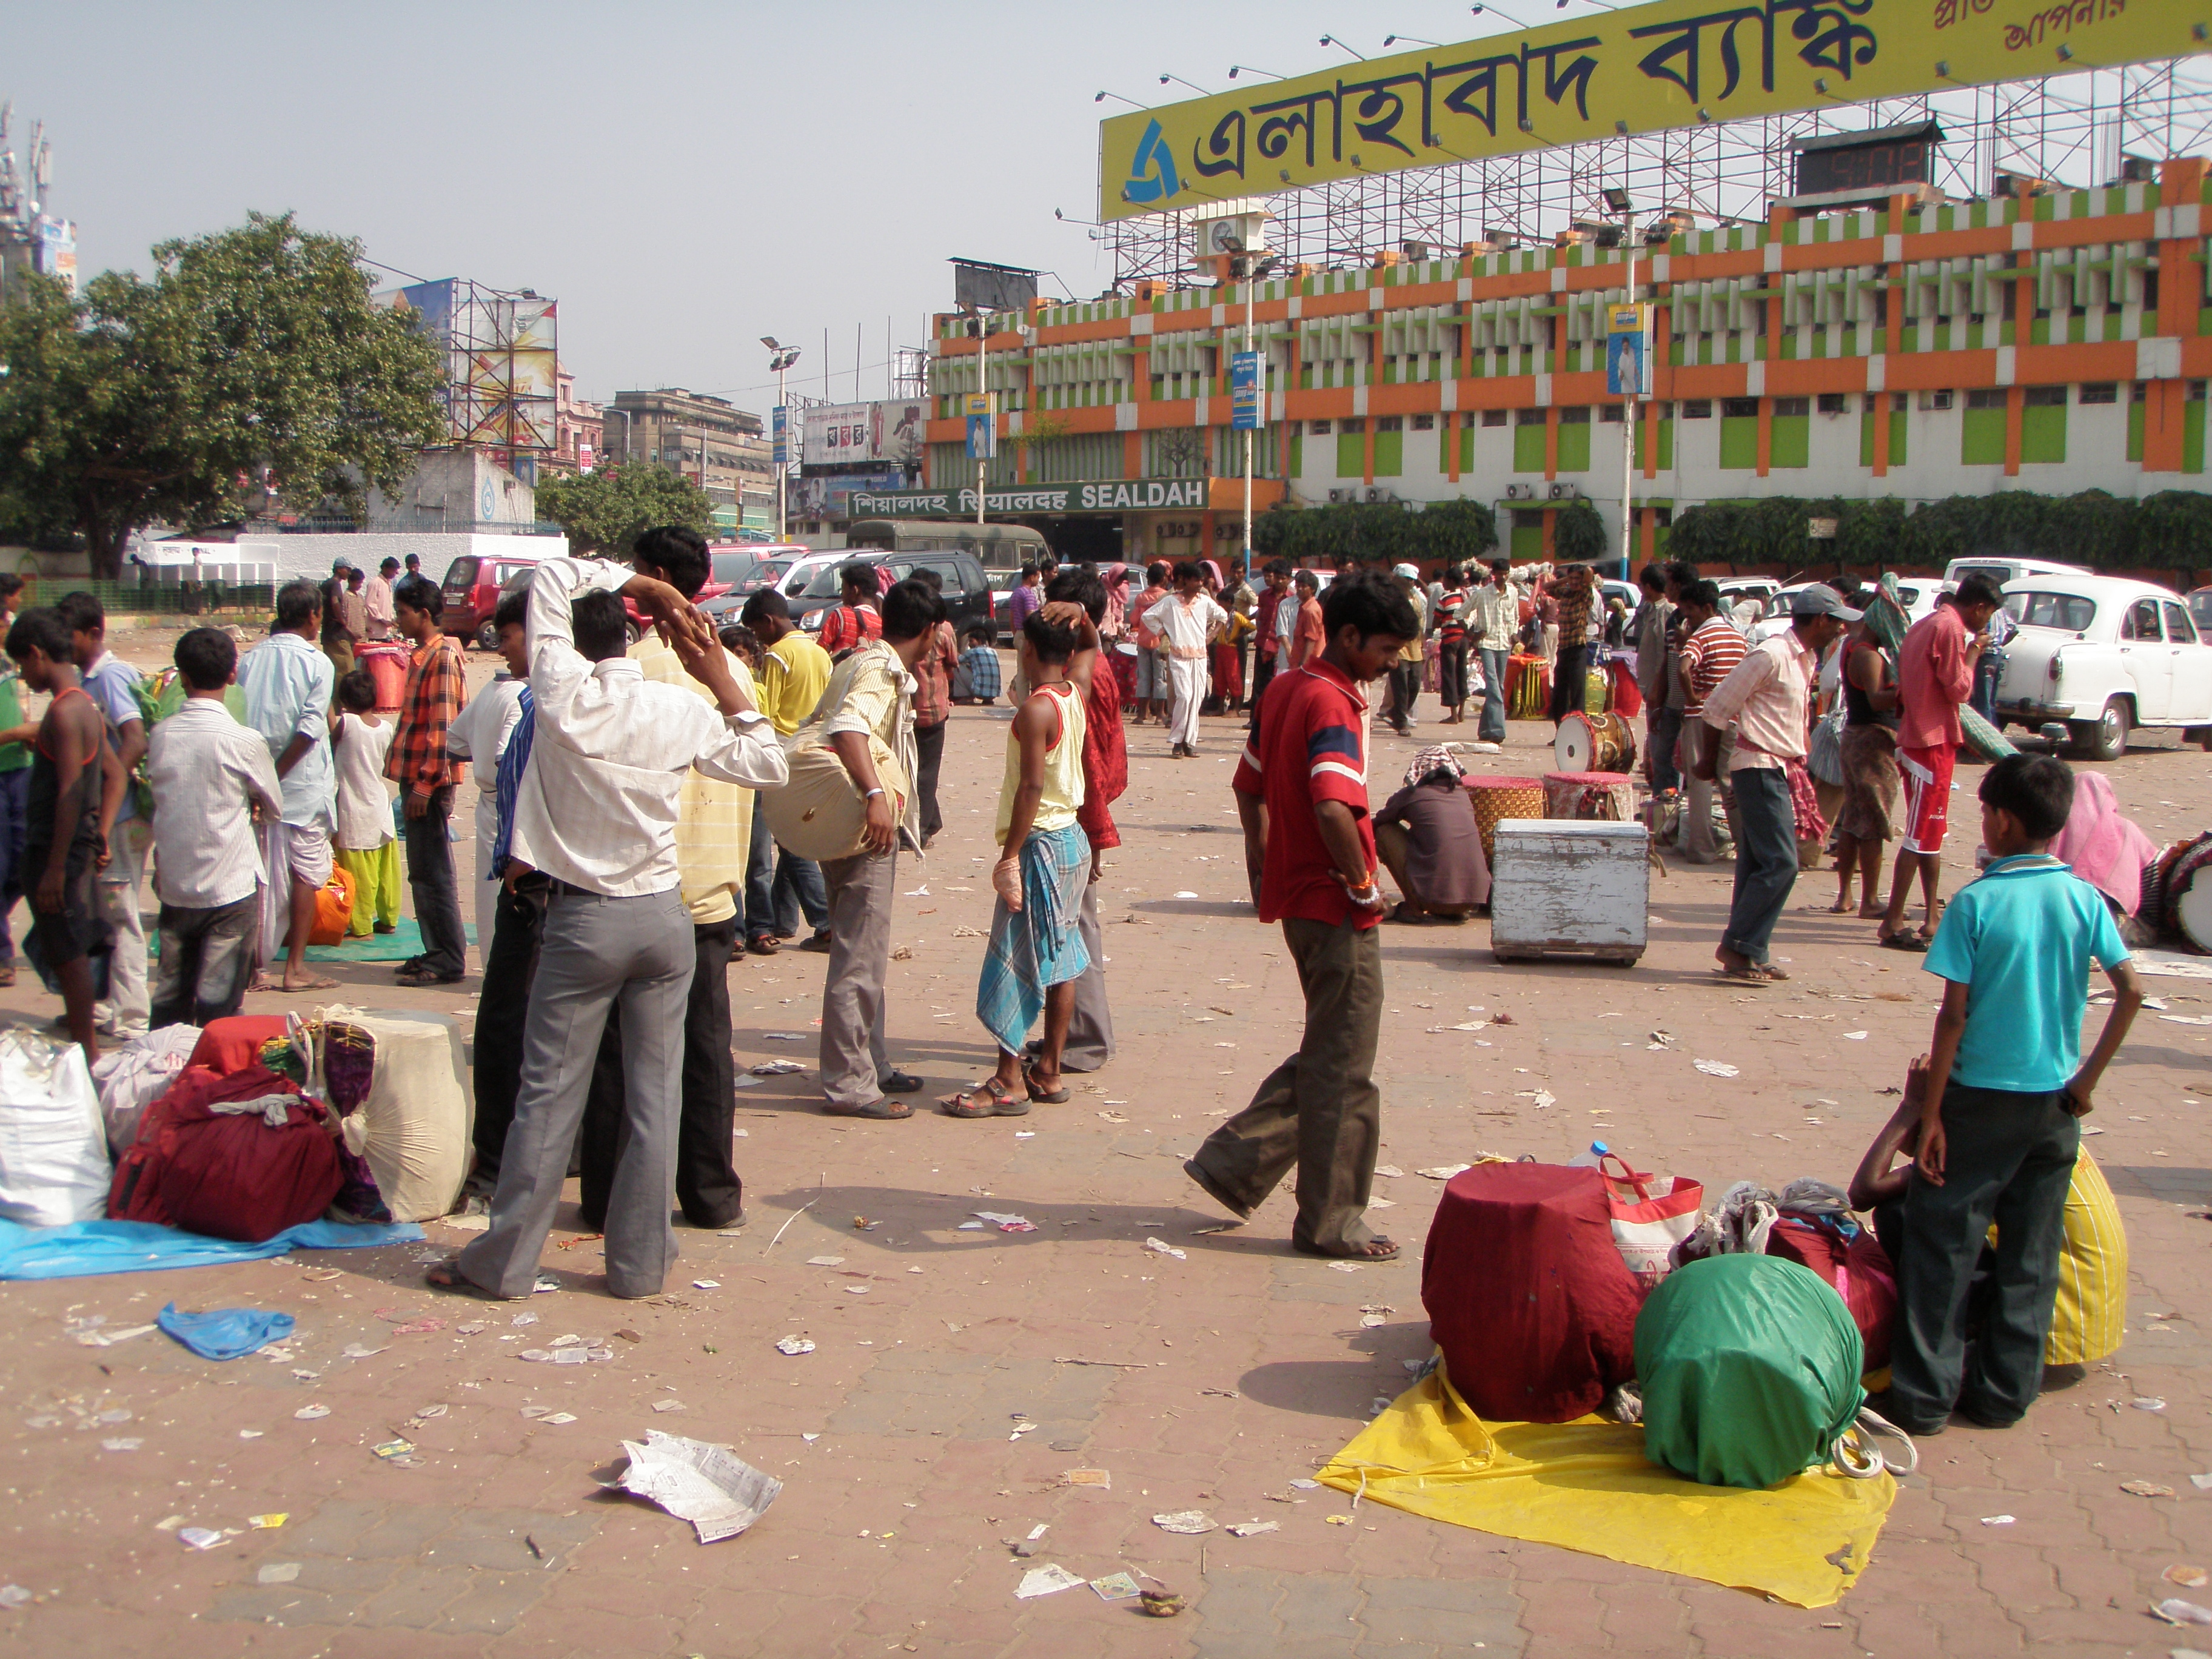 https://upload.wikimedia.org/wikipedia/commons/5/50/Dhaki_Bazaar_-_Sealdah_Railway_Station_-_Kolkata_2011-10-03_030245.JPG